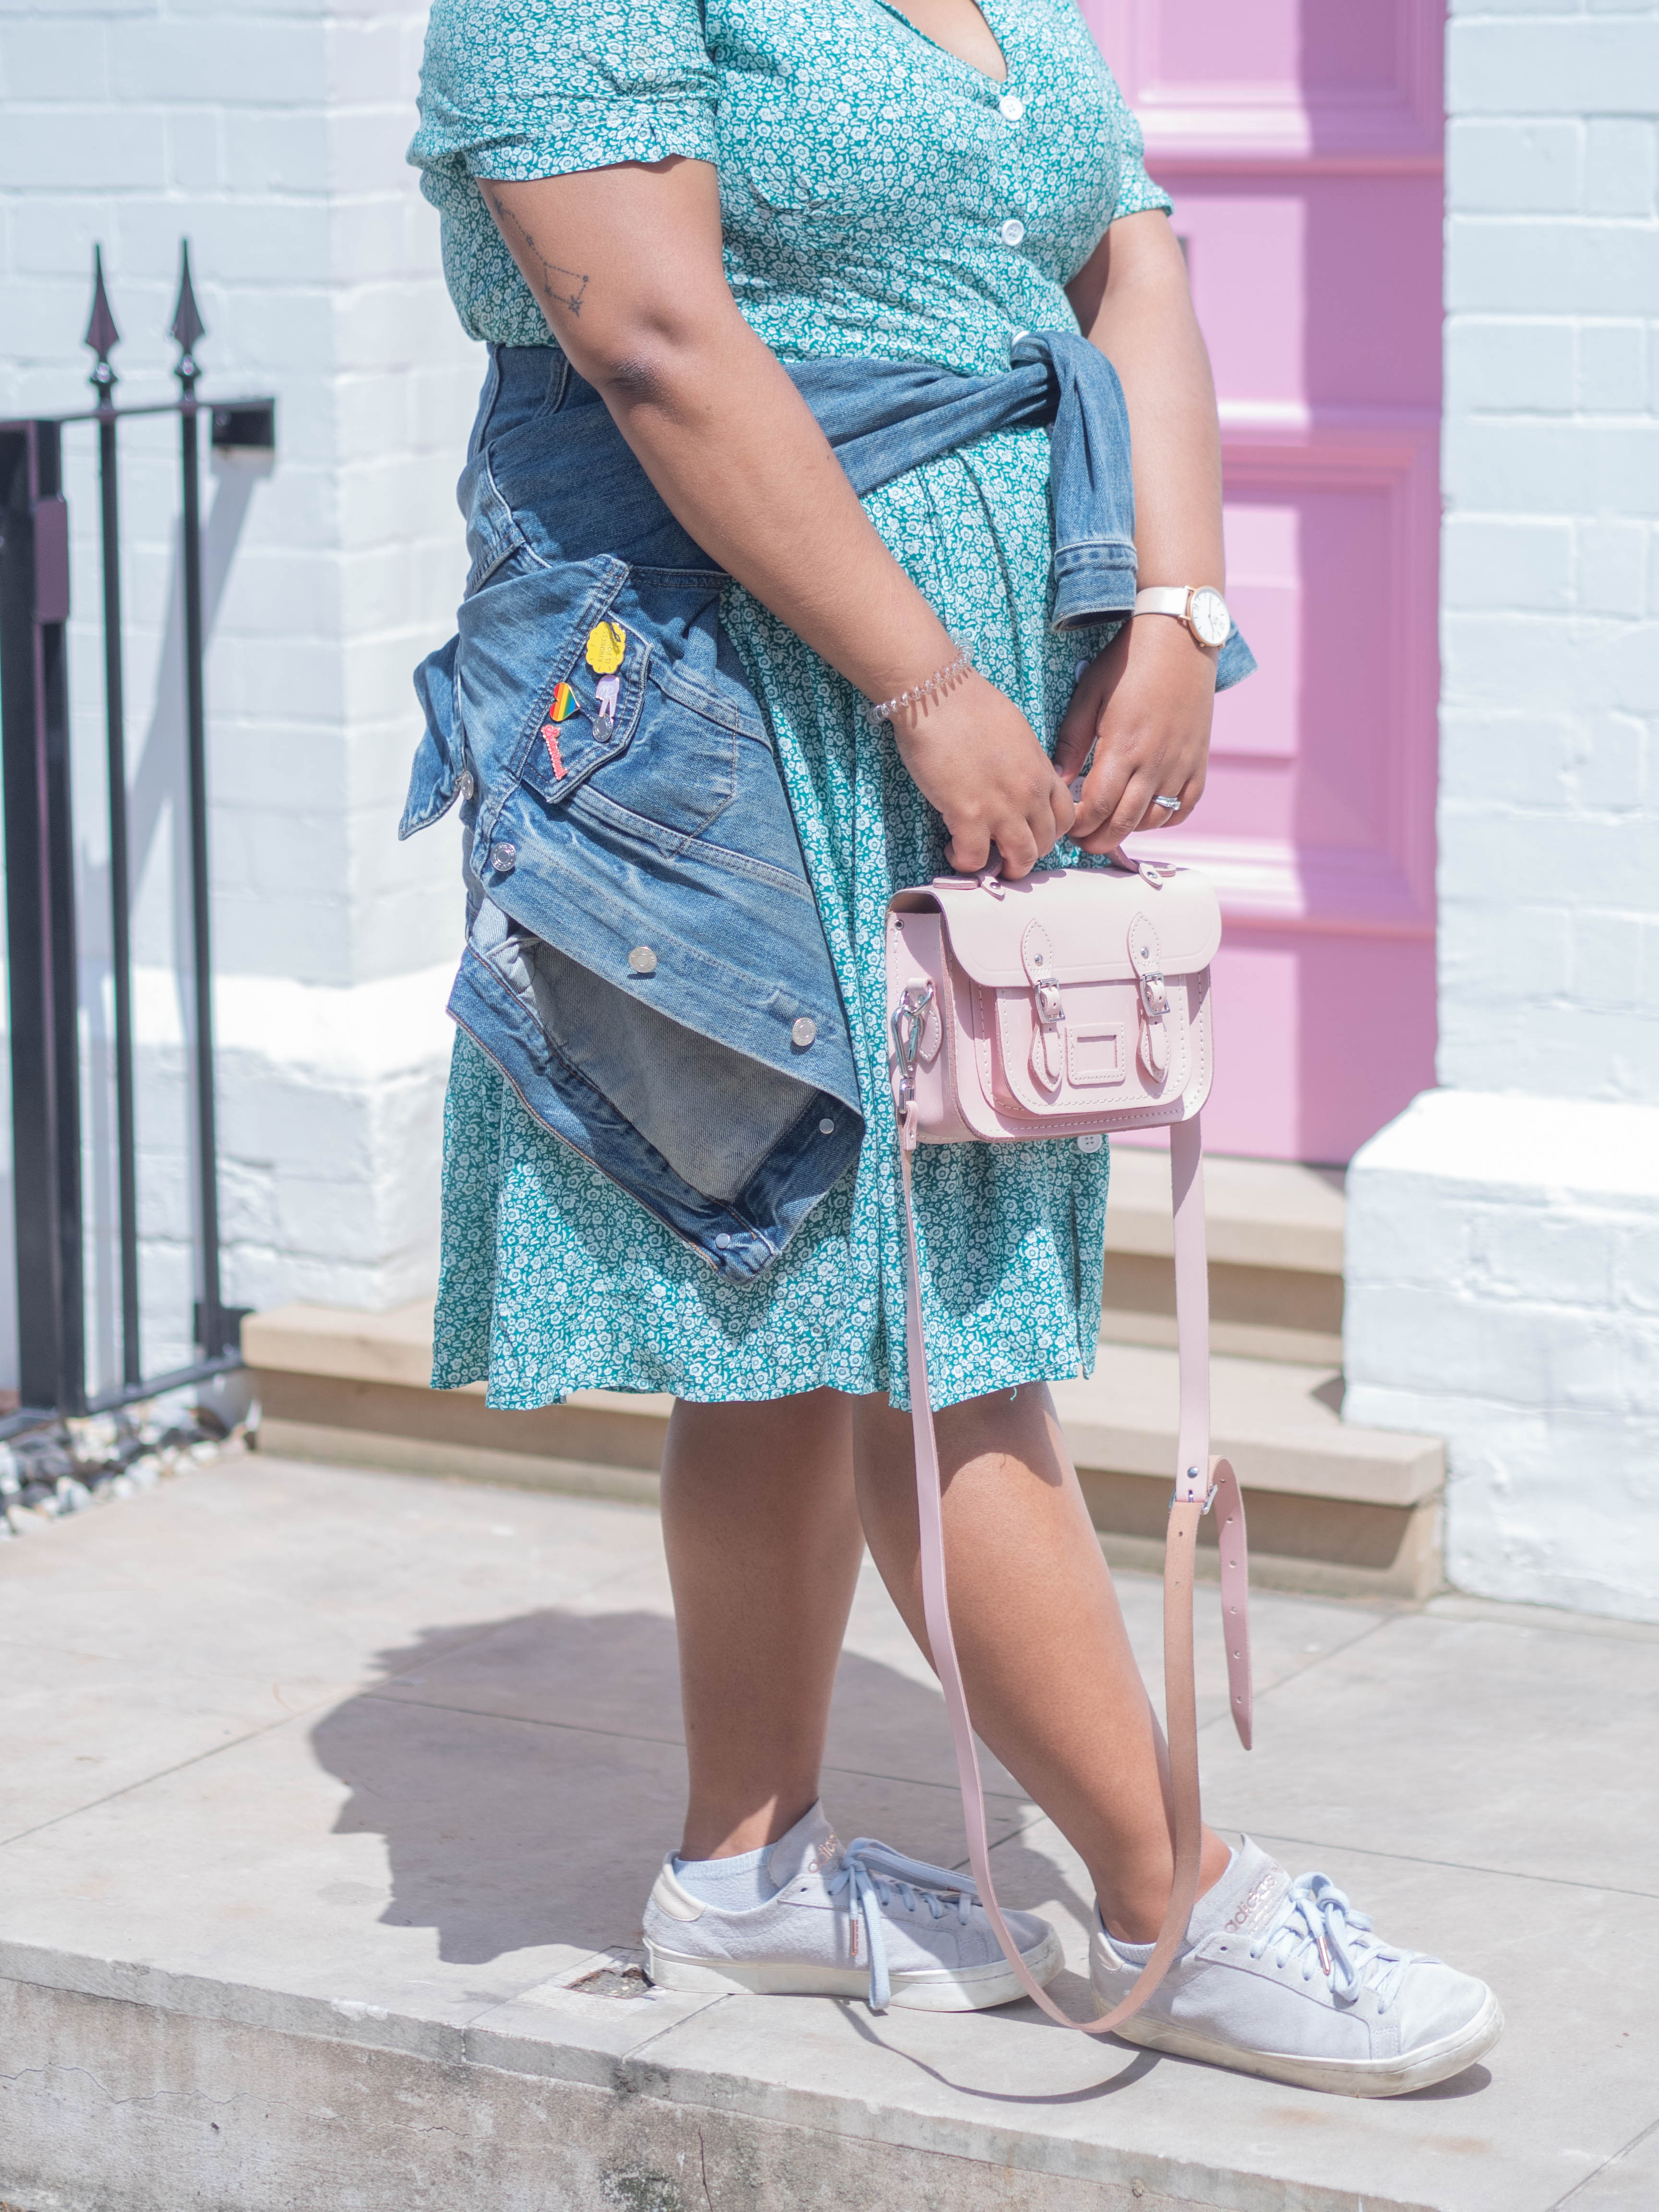 A close up of Ghenet's outfit: a pink satchel bag, a denim jacket tied at the waist, adorned with pin badges.